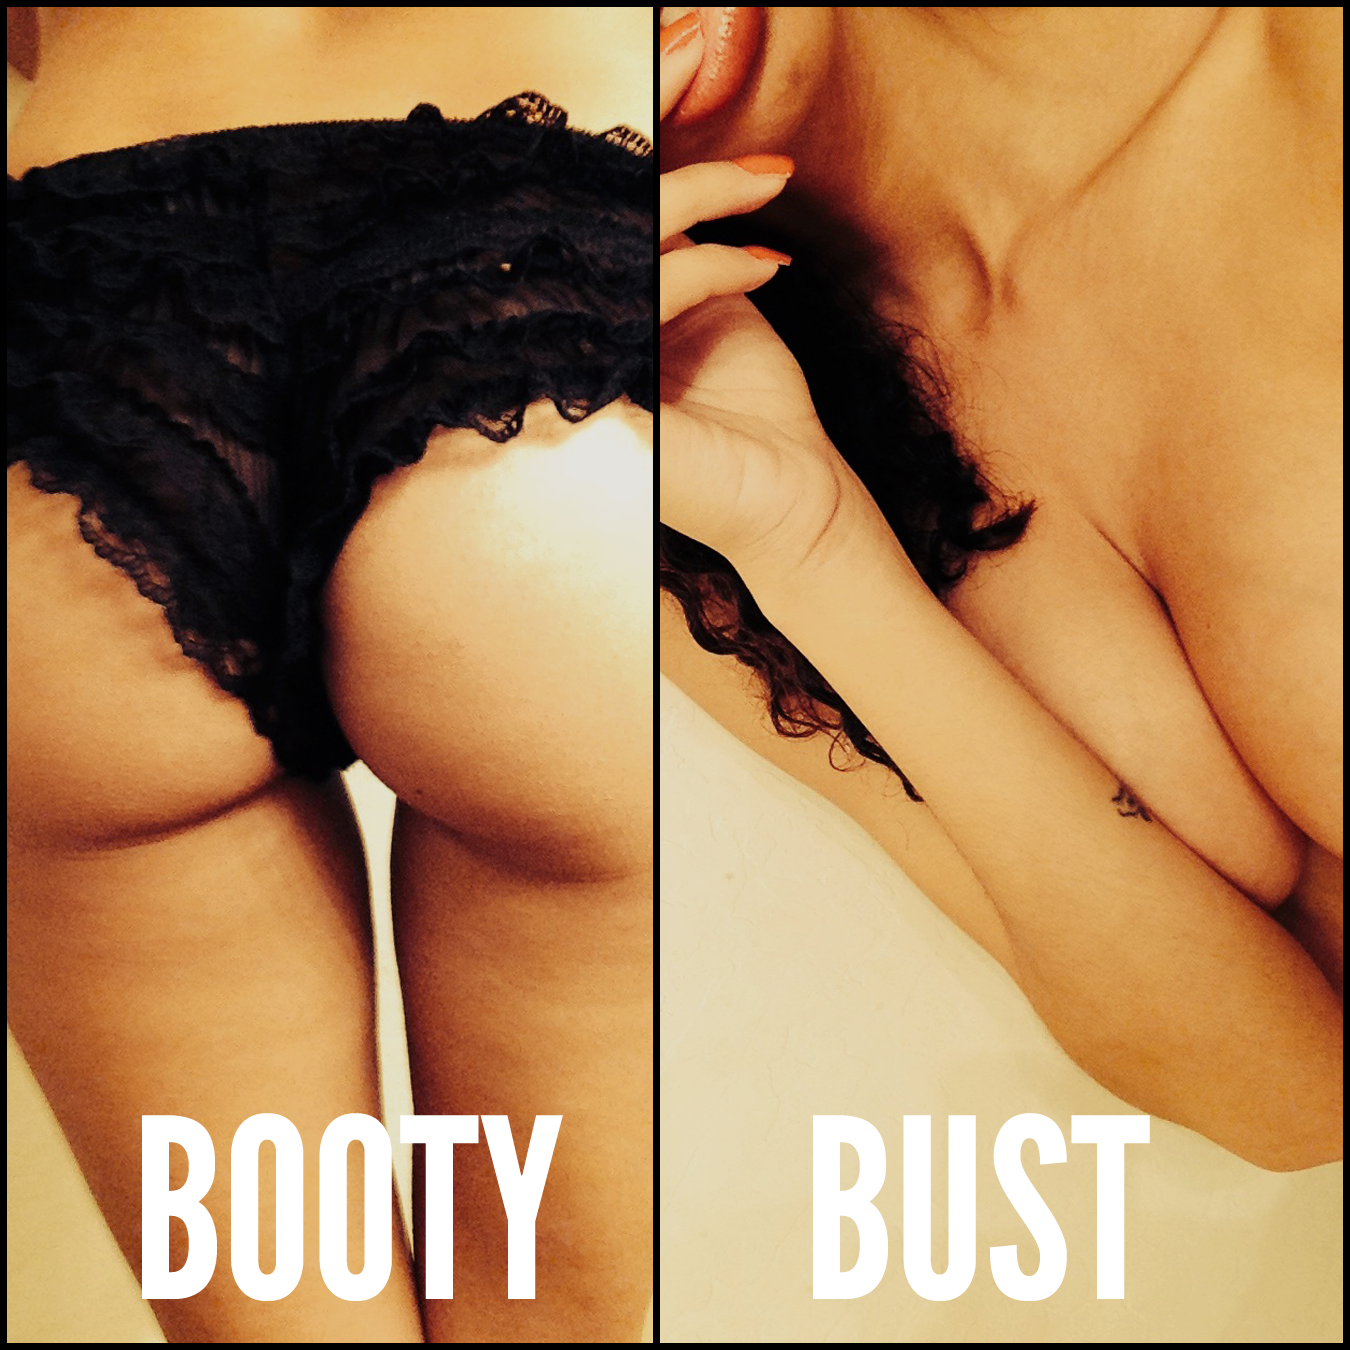 Booty or Bust - David A - Free Edit